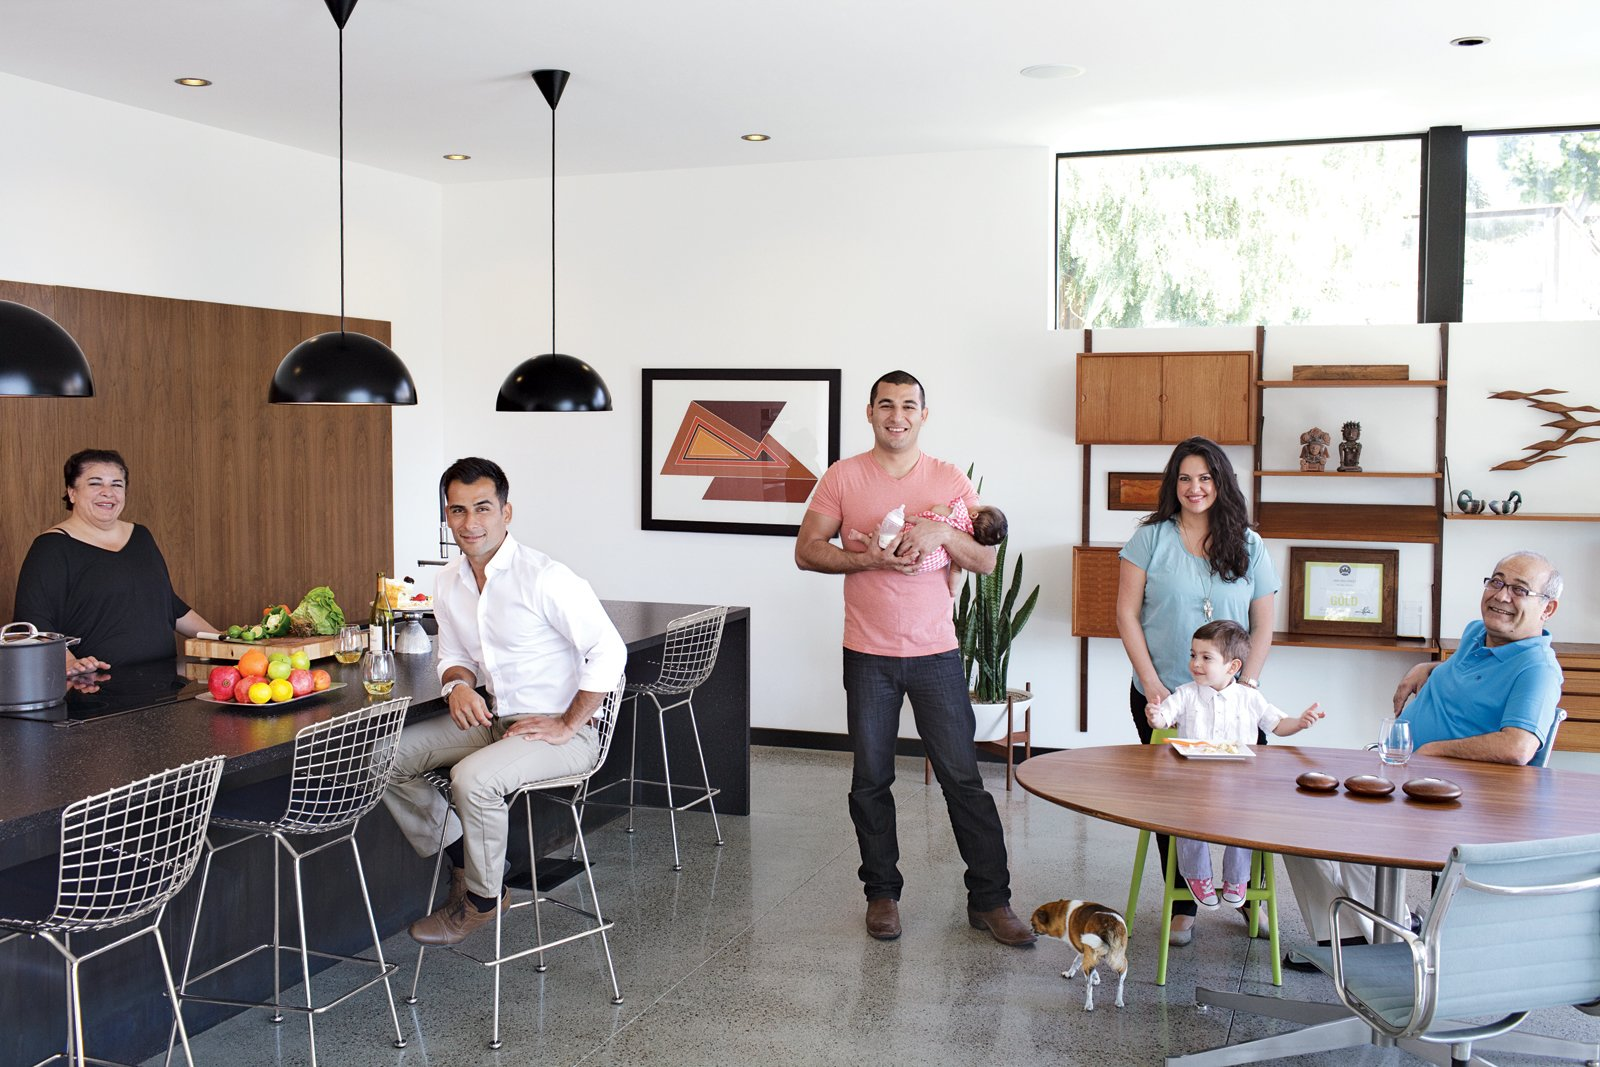 Parents Mitra and Sasan Nakhshab join sons Nima and Soheil (with daughter, Sofia) and Soheil's girlfriend, Susana Mora (with son, Shayan), on the main floor. Midcentury Homes by Dwell